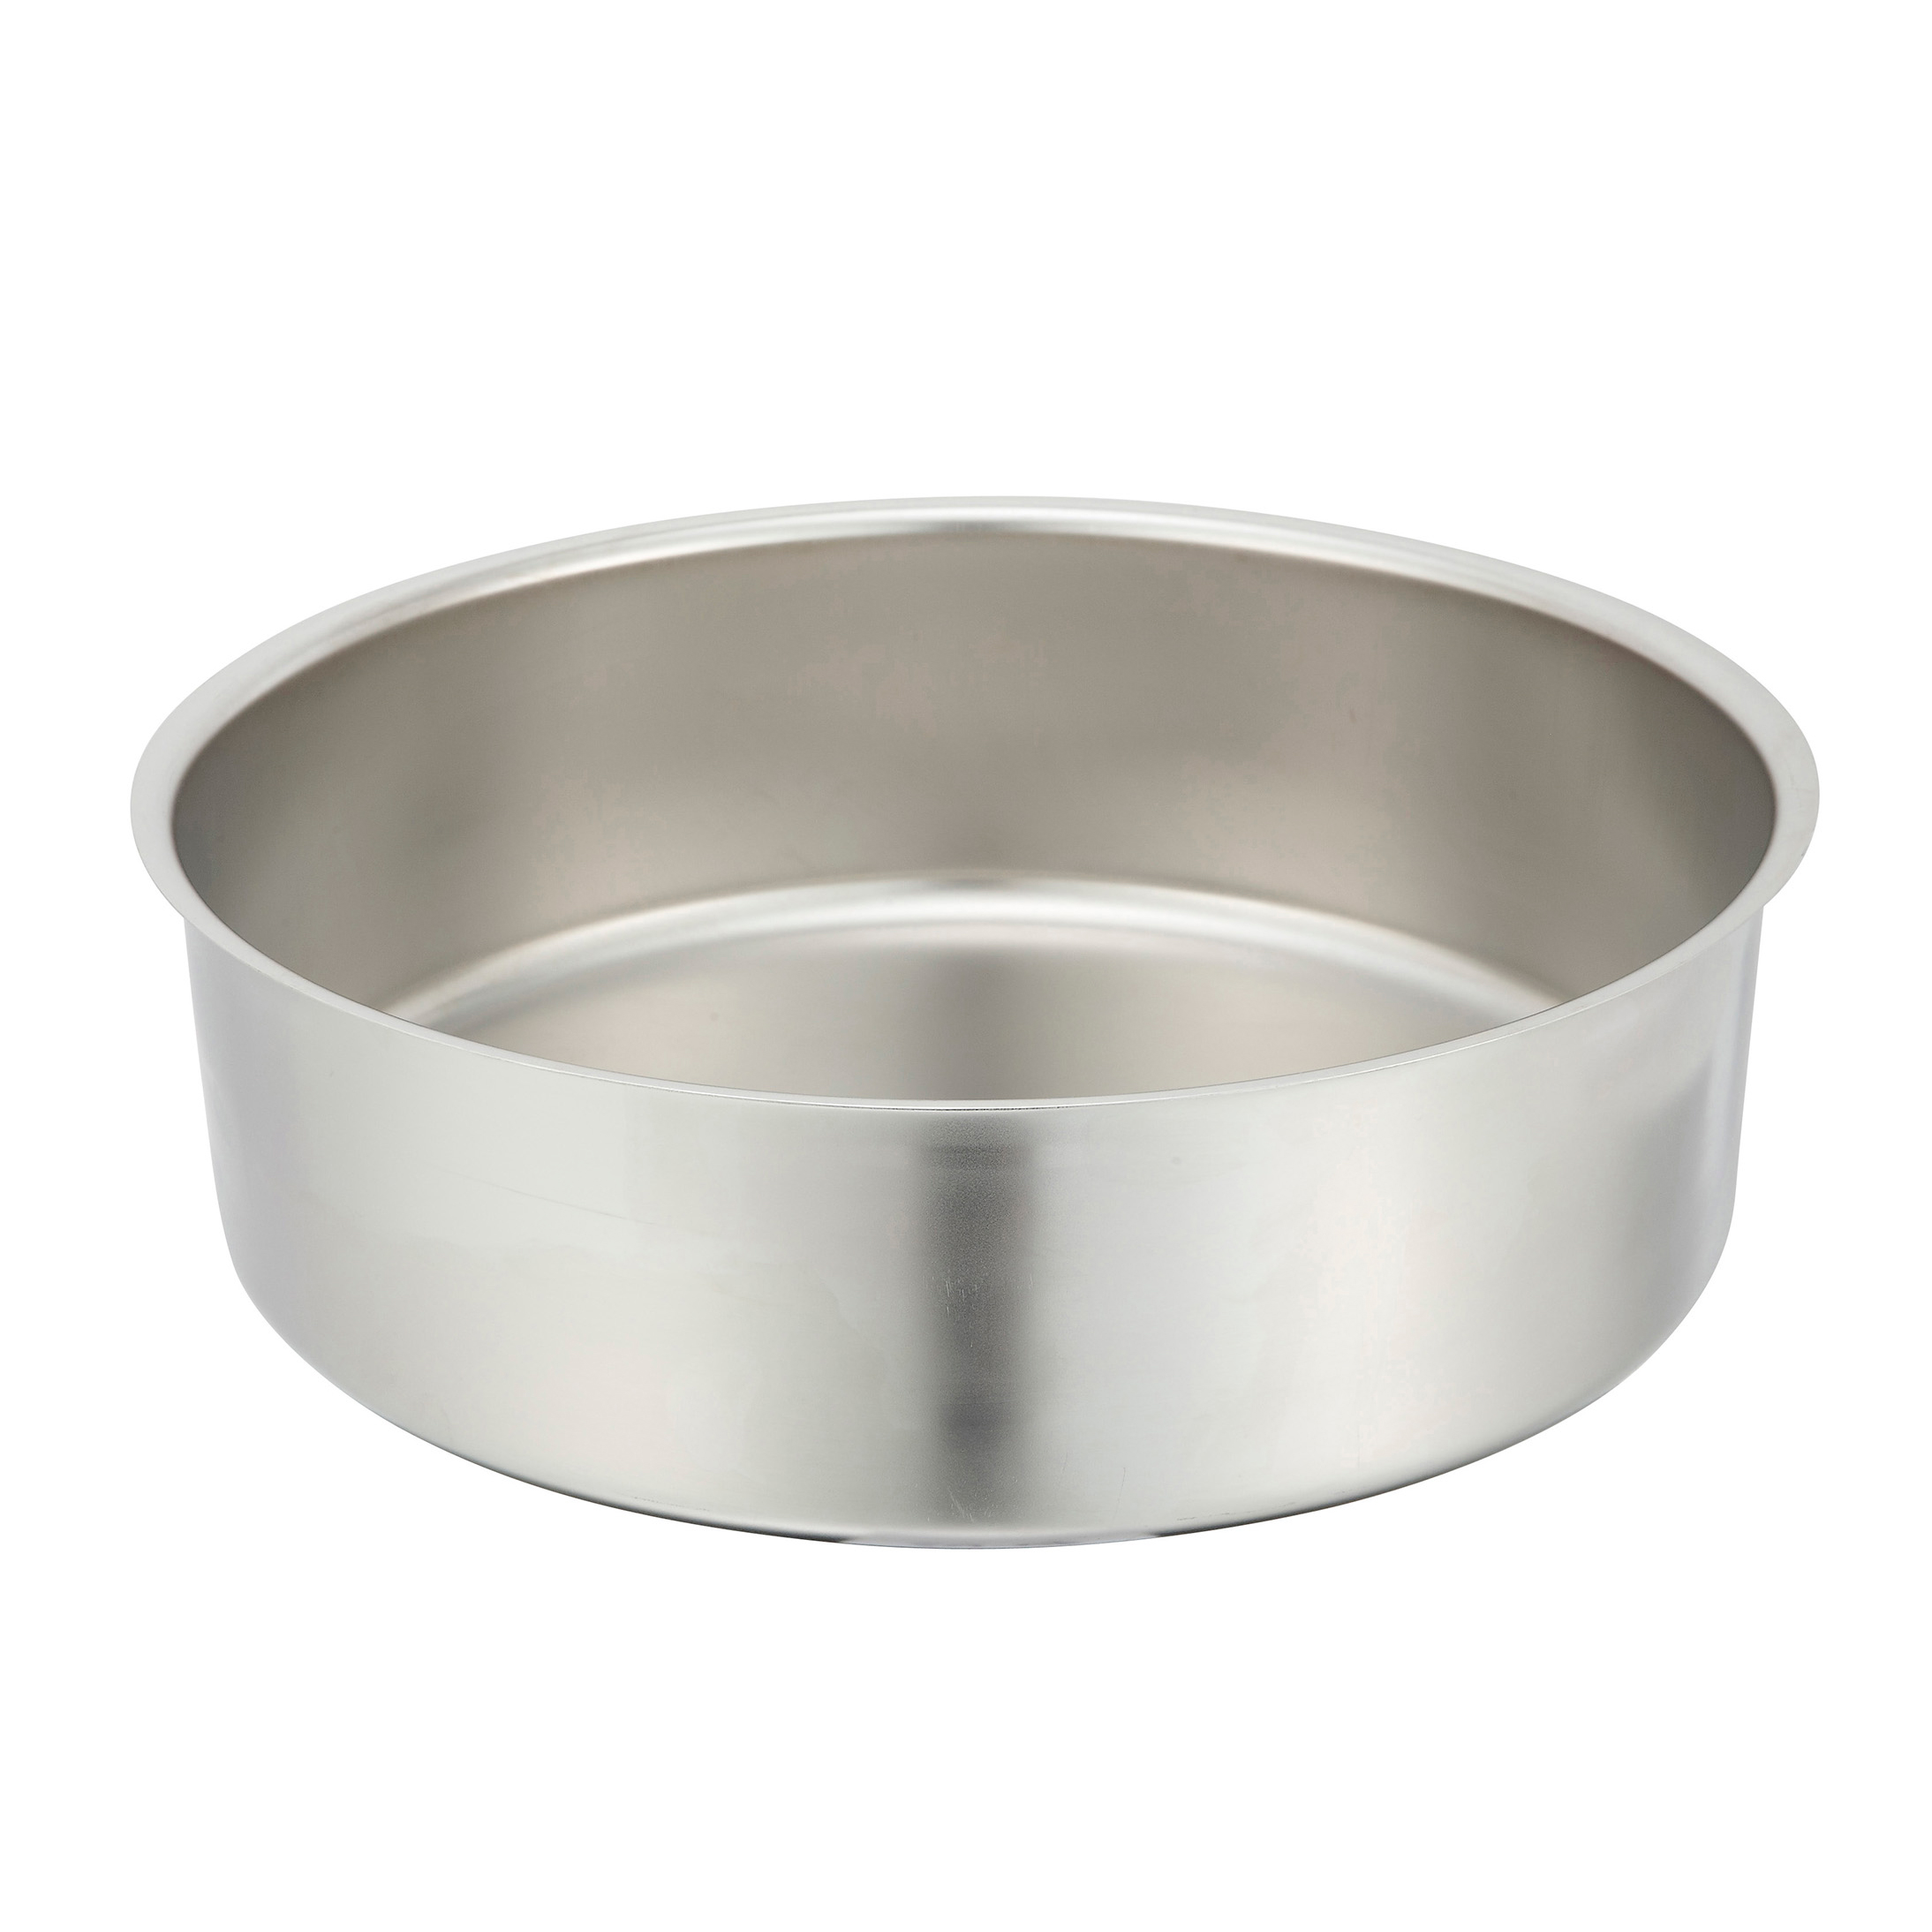 Winco 602-WP chafing dish pan